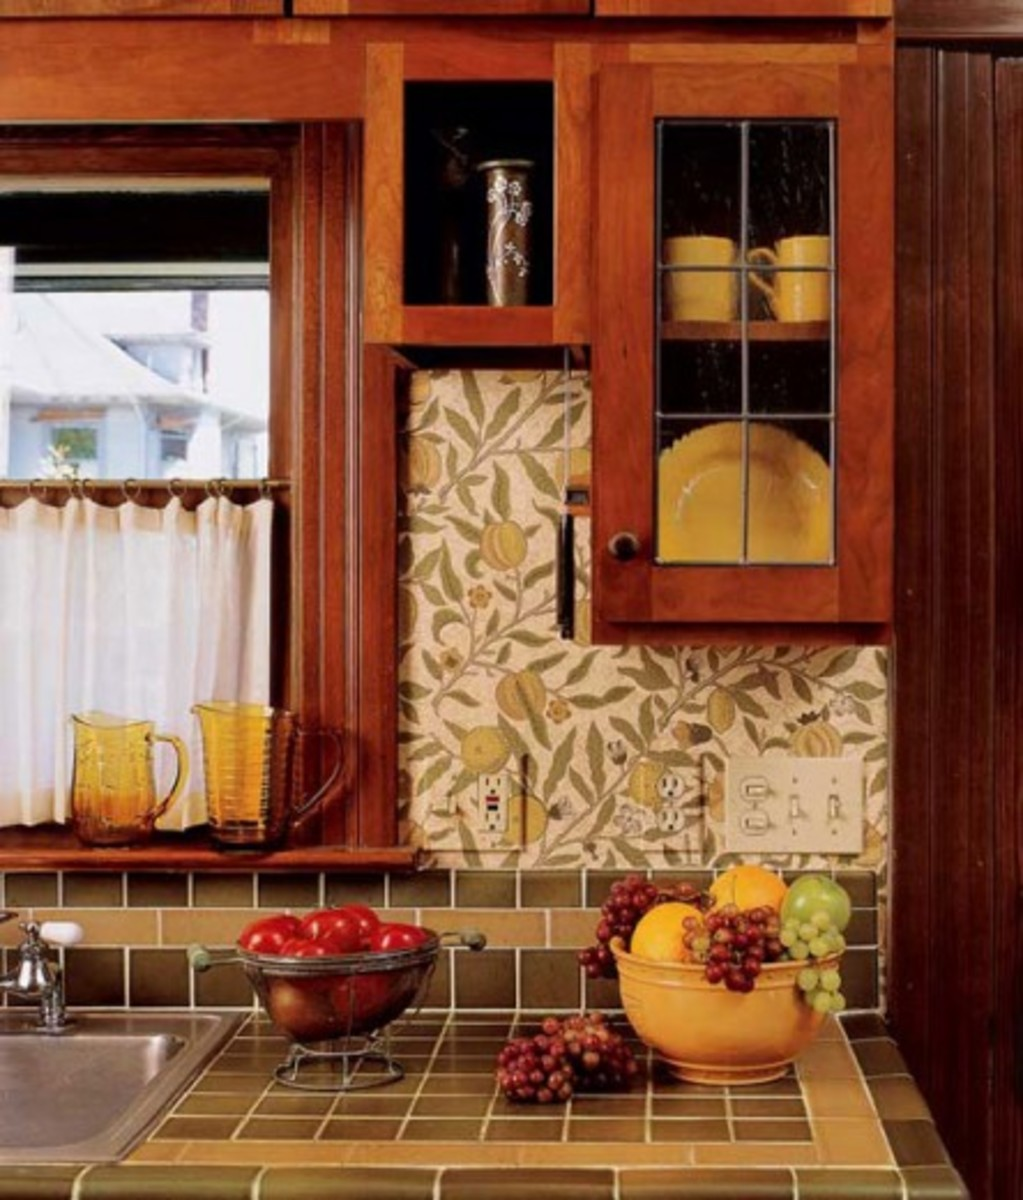 Very simple cabinets look pleasingly old-fashioned accompanied by earthy tile countertops and William Morris-designed 'Fruit' wallpaper, all done in the same palette. Photo by William Wright.